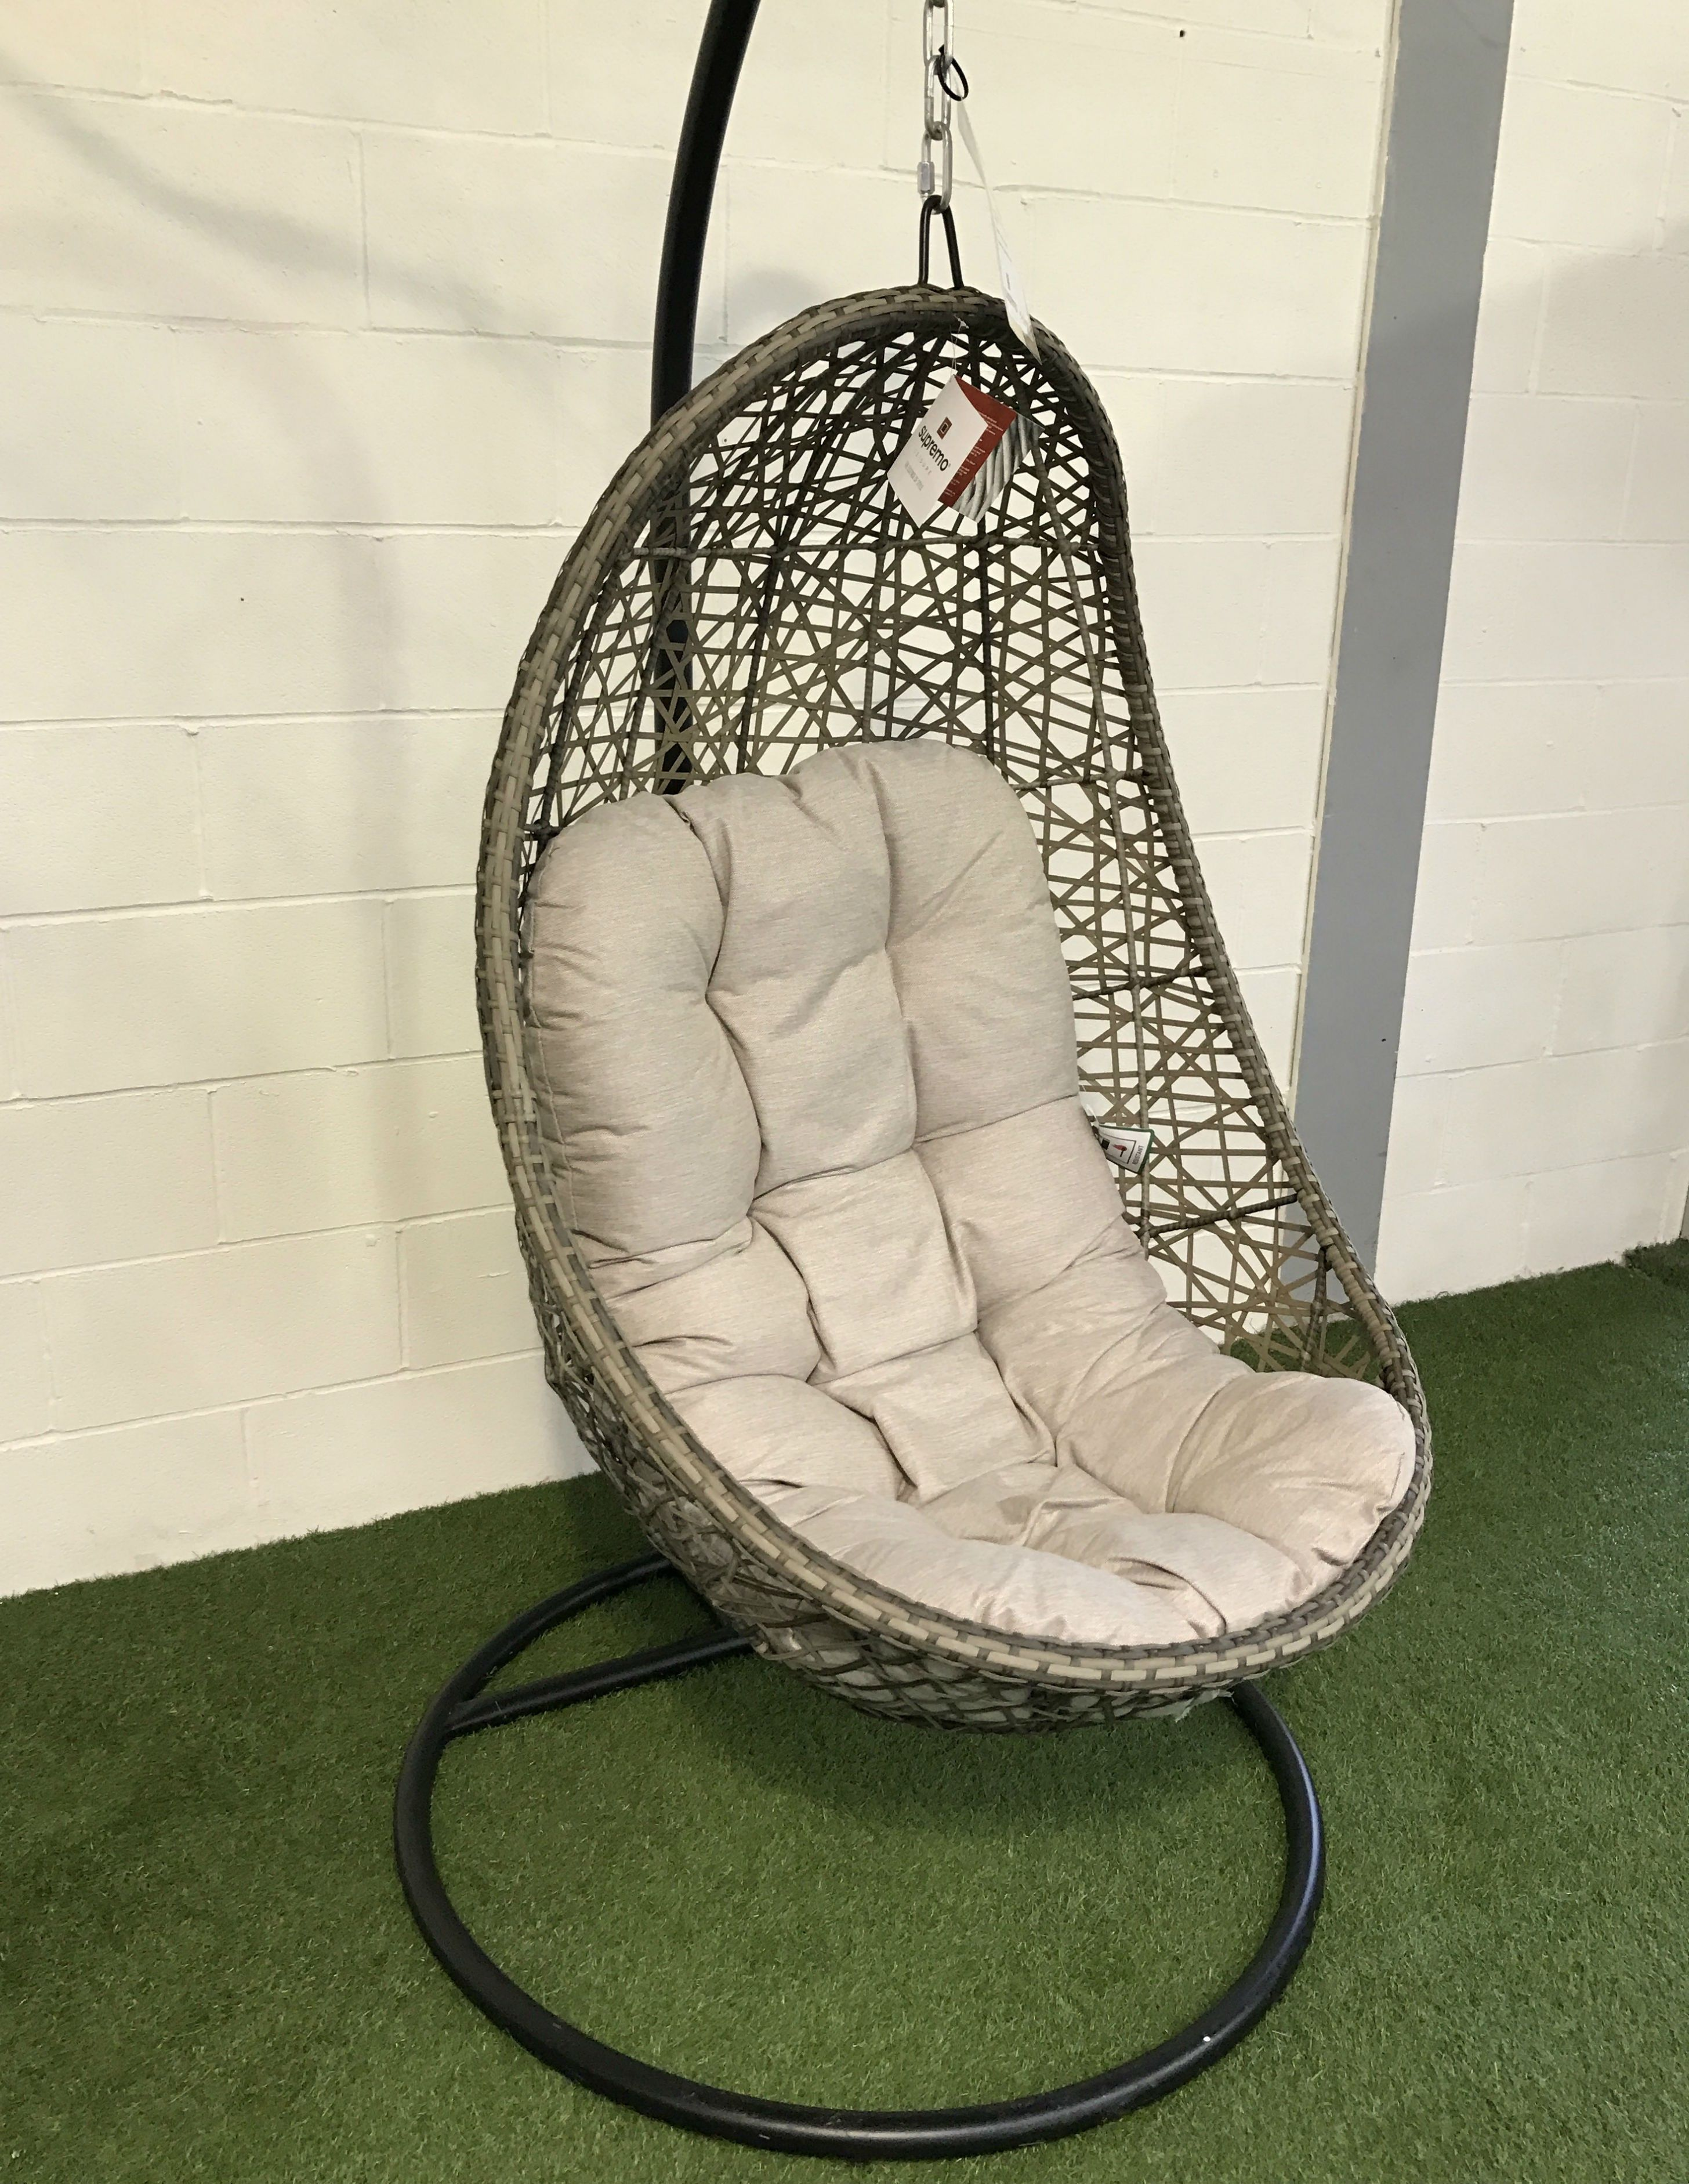 Superieur Pin By Newbank Garden Centre On Swings And Benches | Pinterest | Egg Chair,  Hanging Egg Chair And Bari